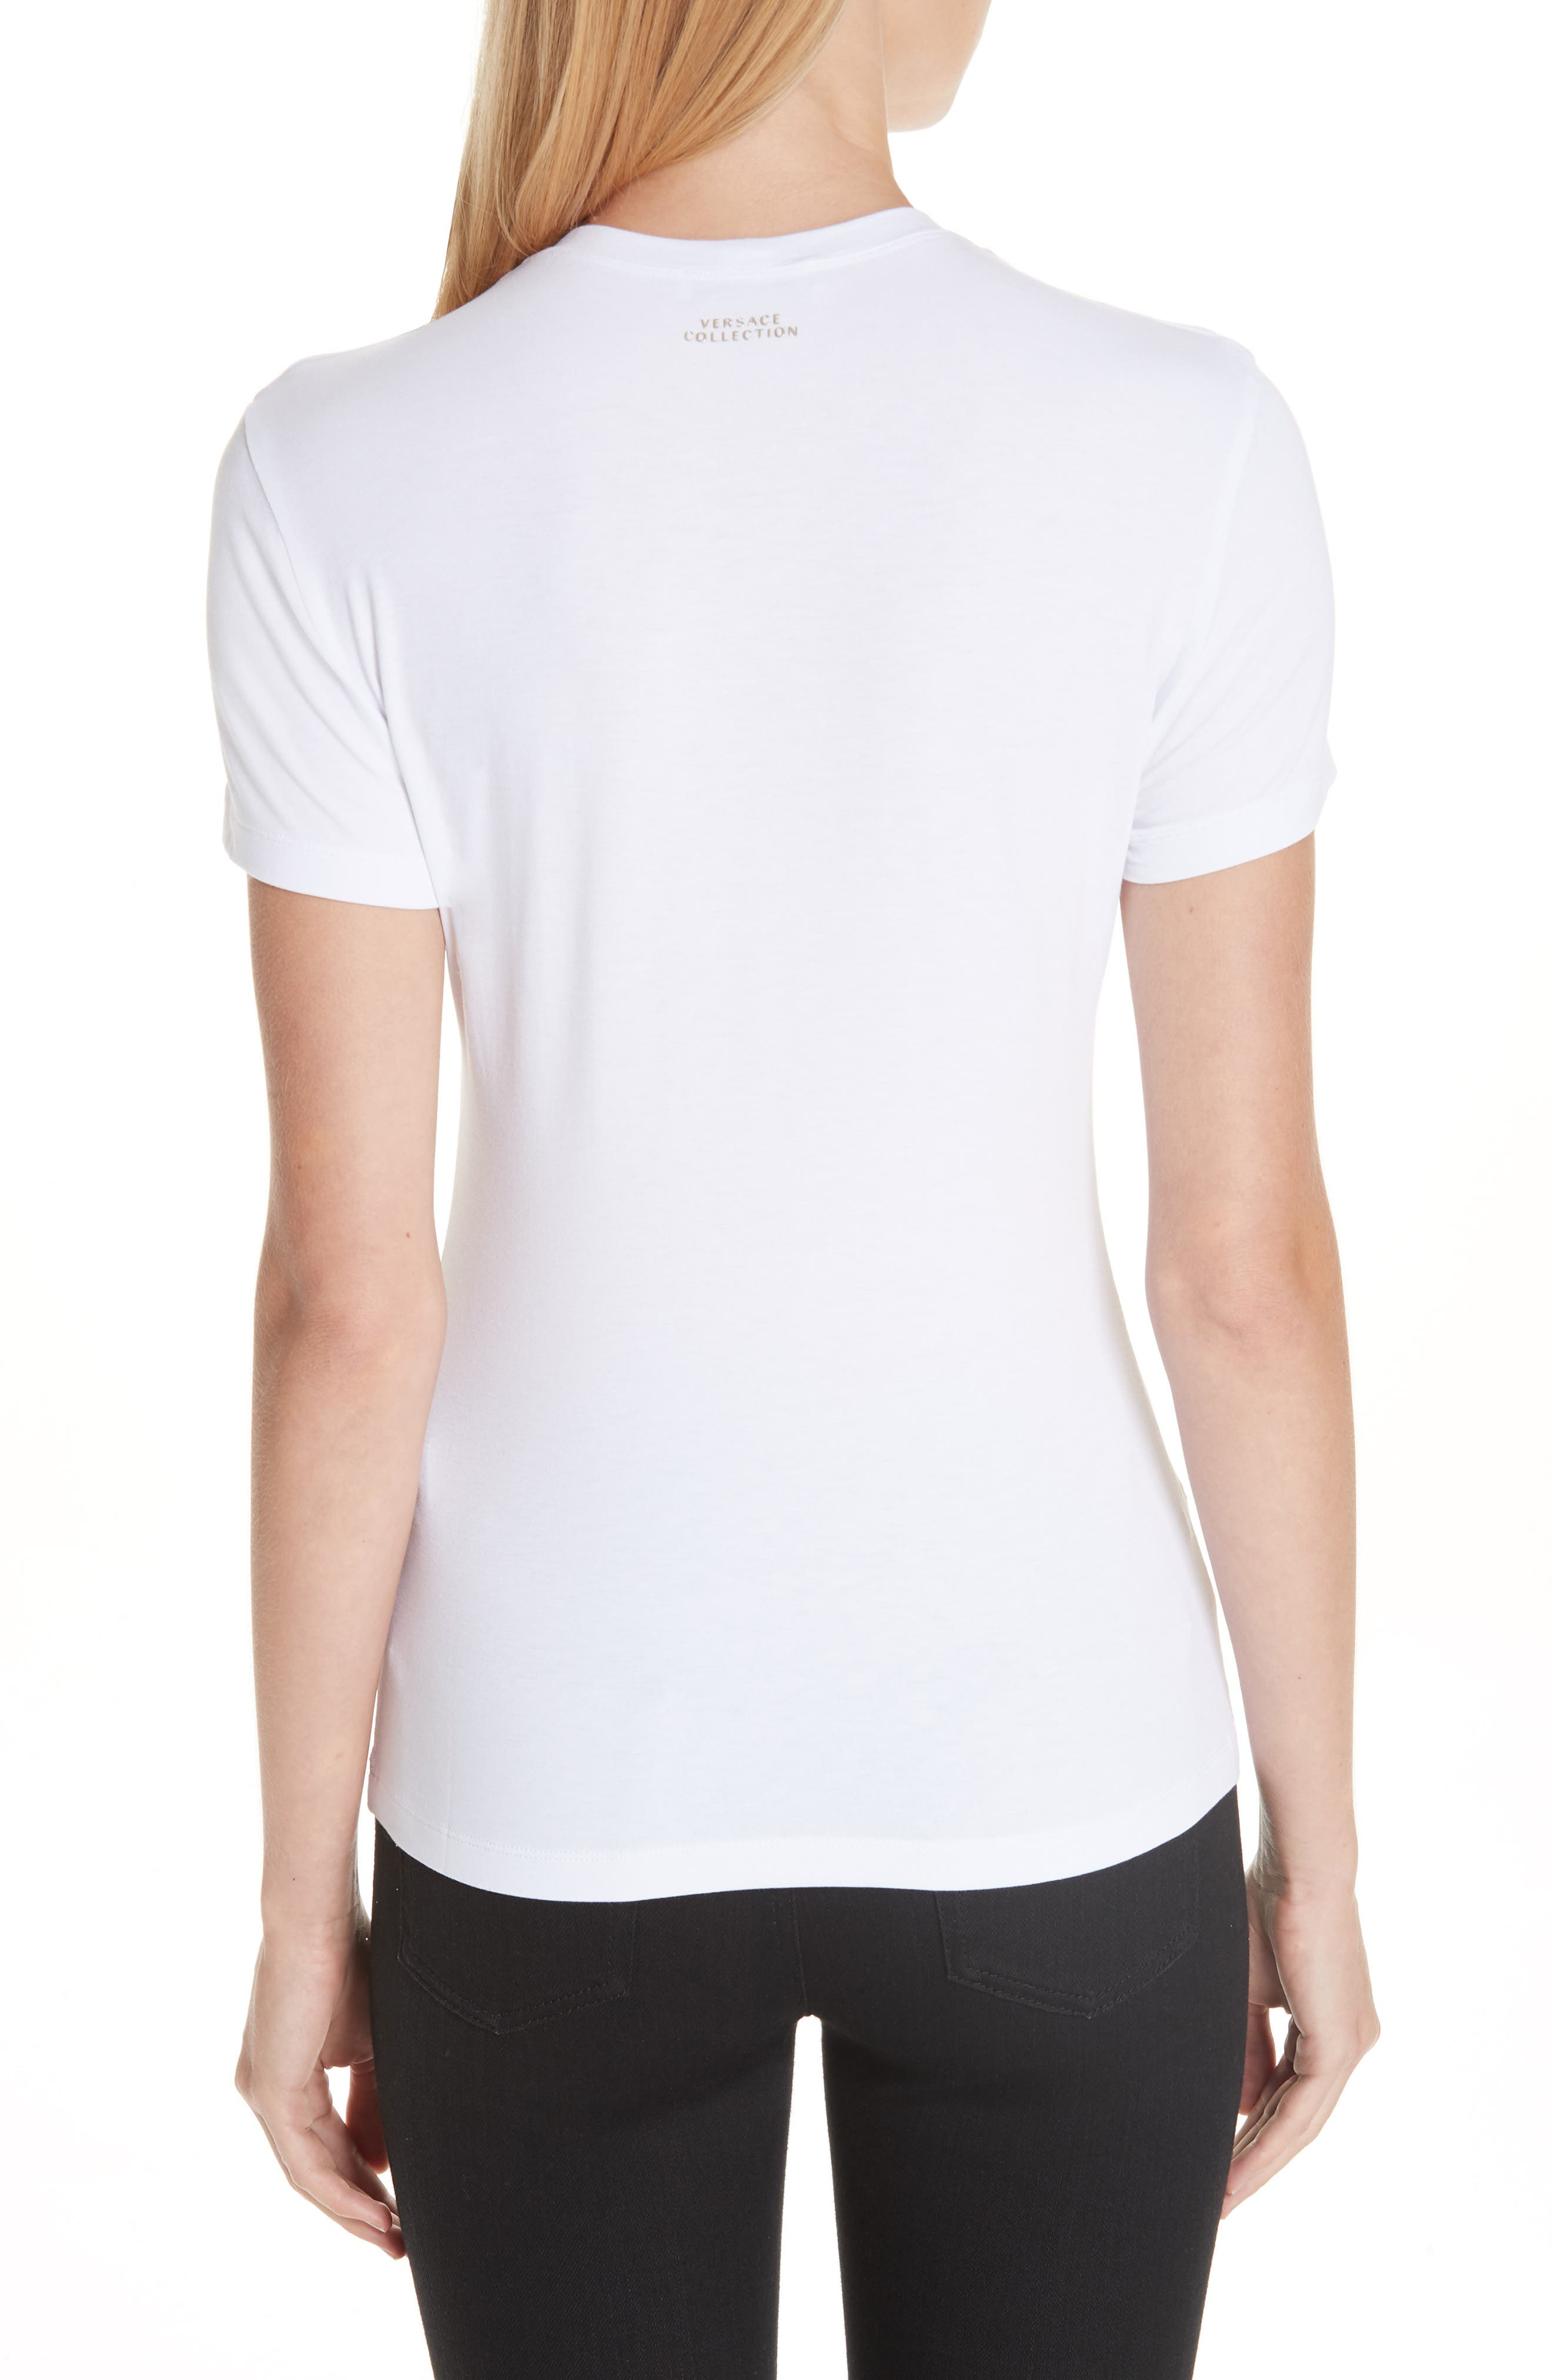 VERSACE COLLECTION, Medusa Crystal Embellished Jersey Tee, Alternate thumbnail 2, color, 111